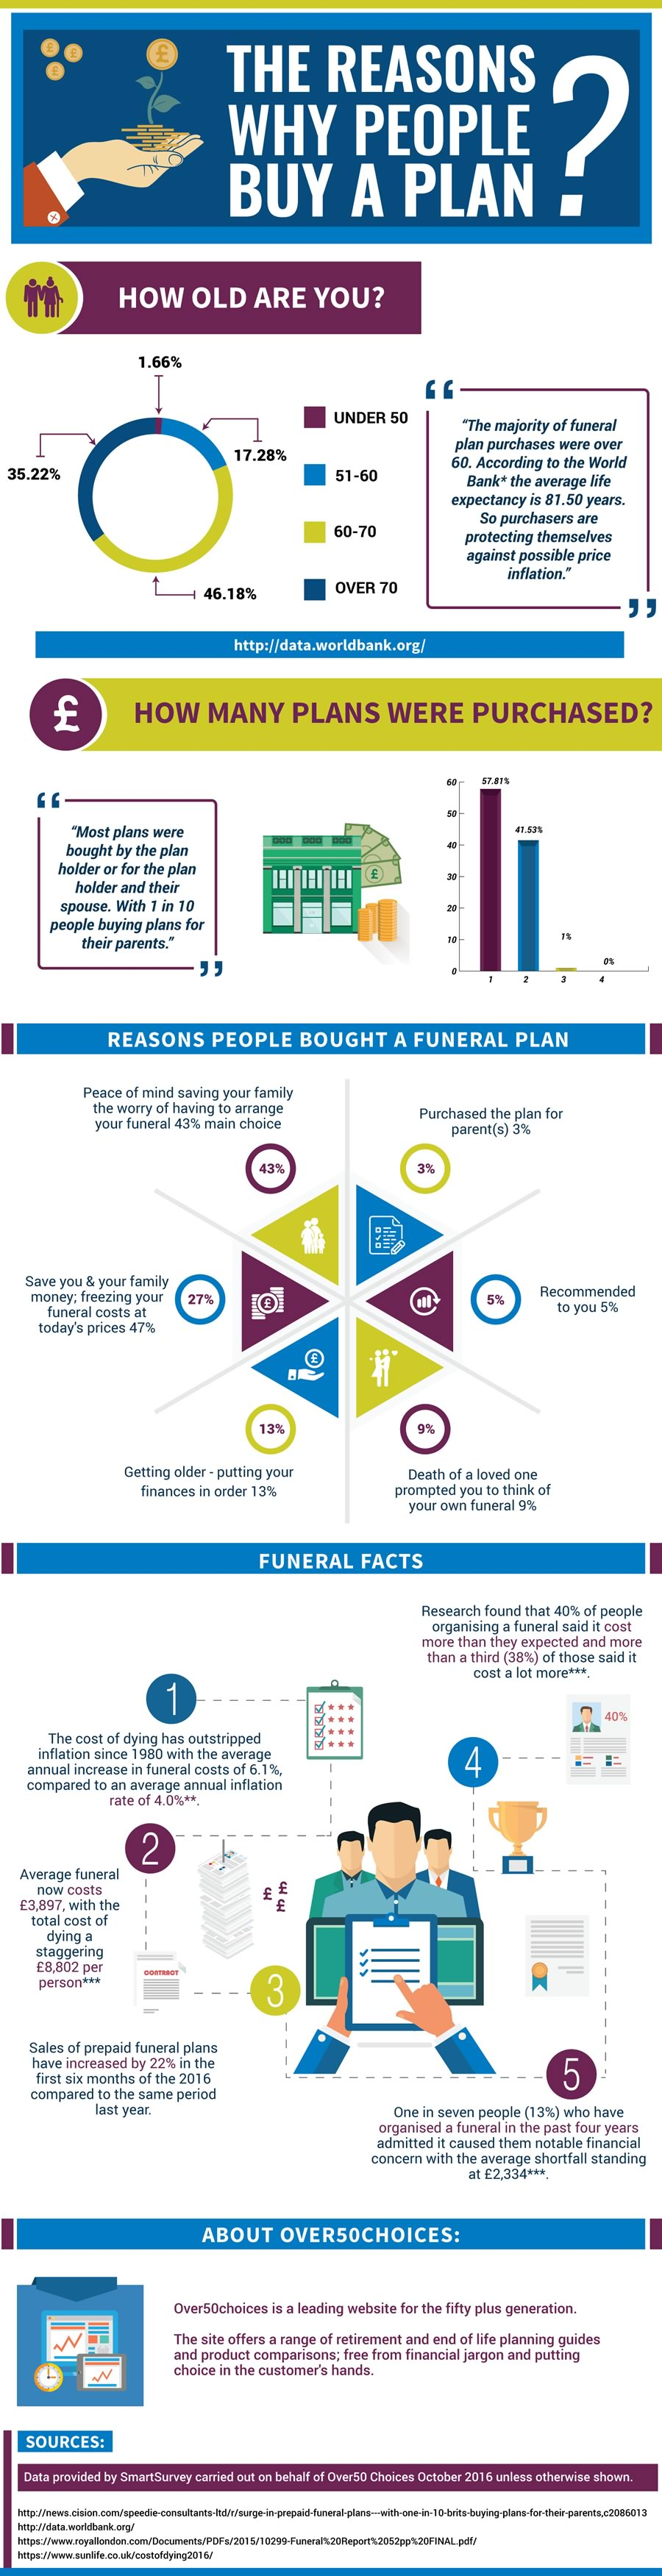 Why do People Buy Funeral Plans?